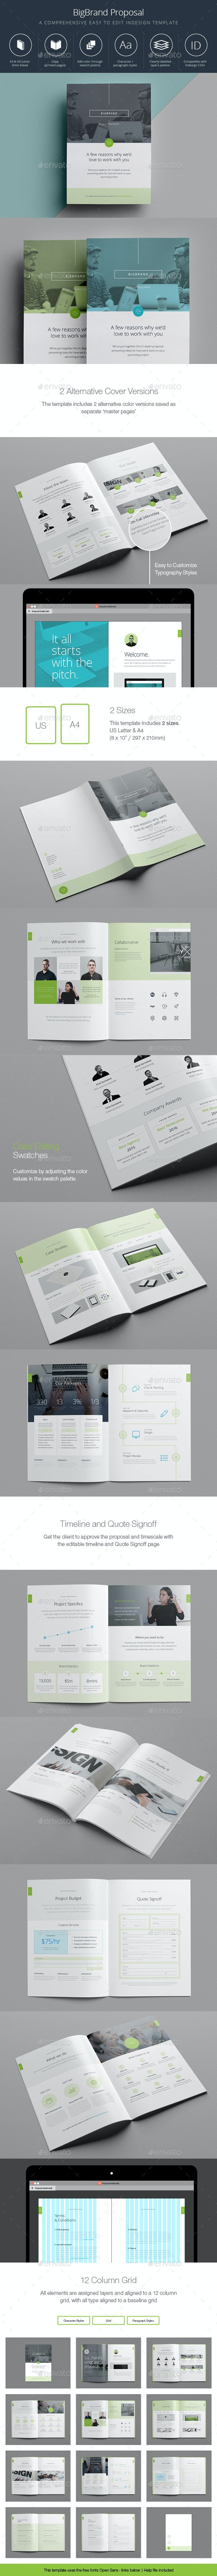 BigBrand Proposal - Proposals & Invoices Stationery